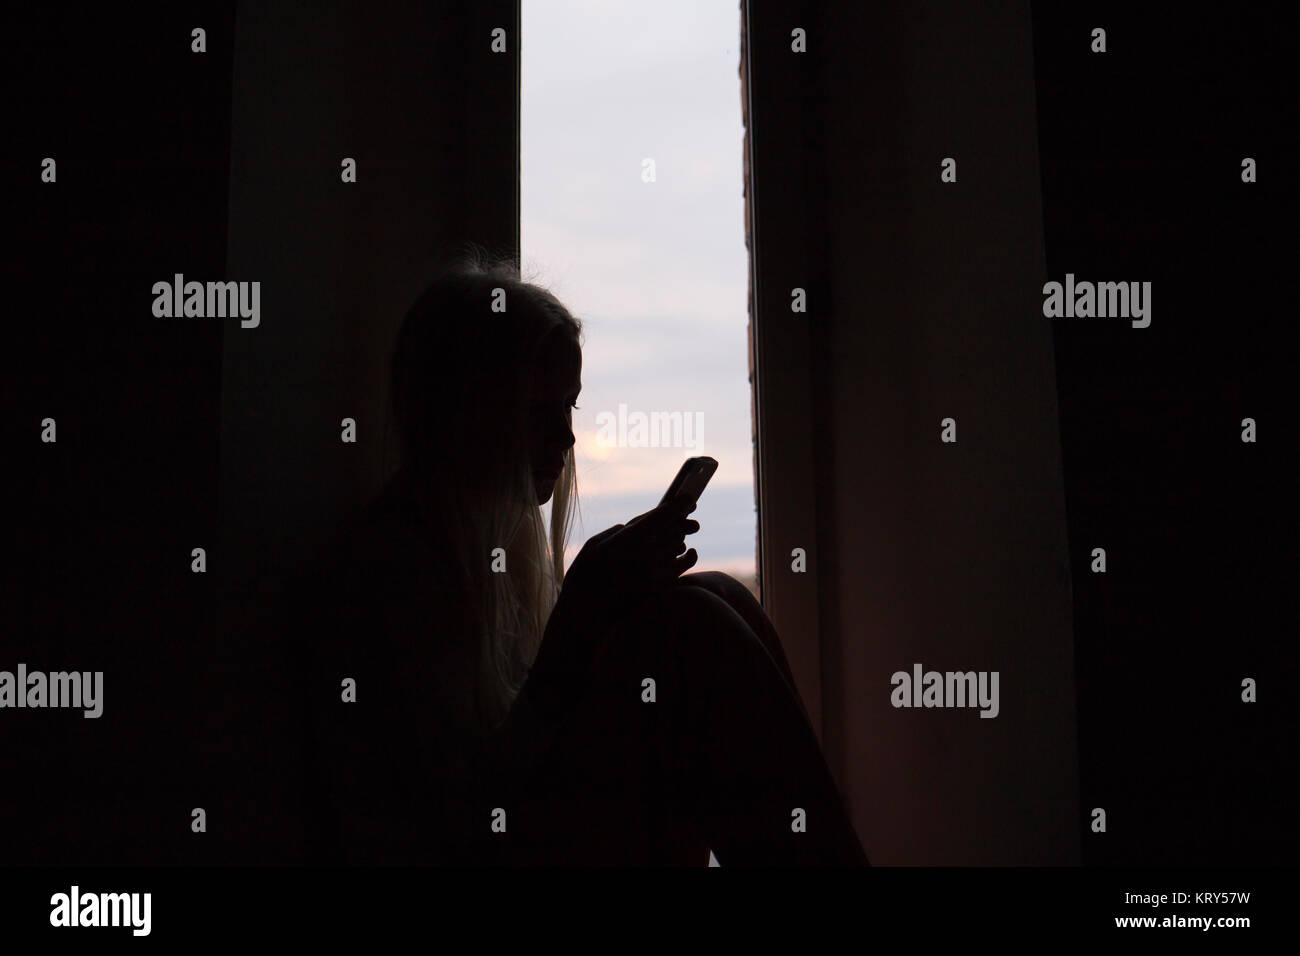 Silhouette of girl holding smart phone - Stock Image